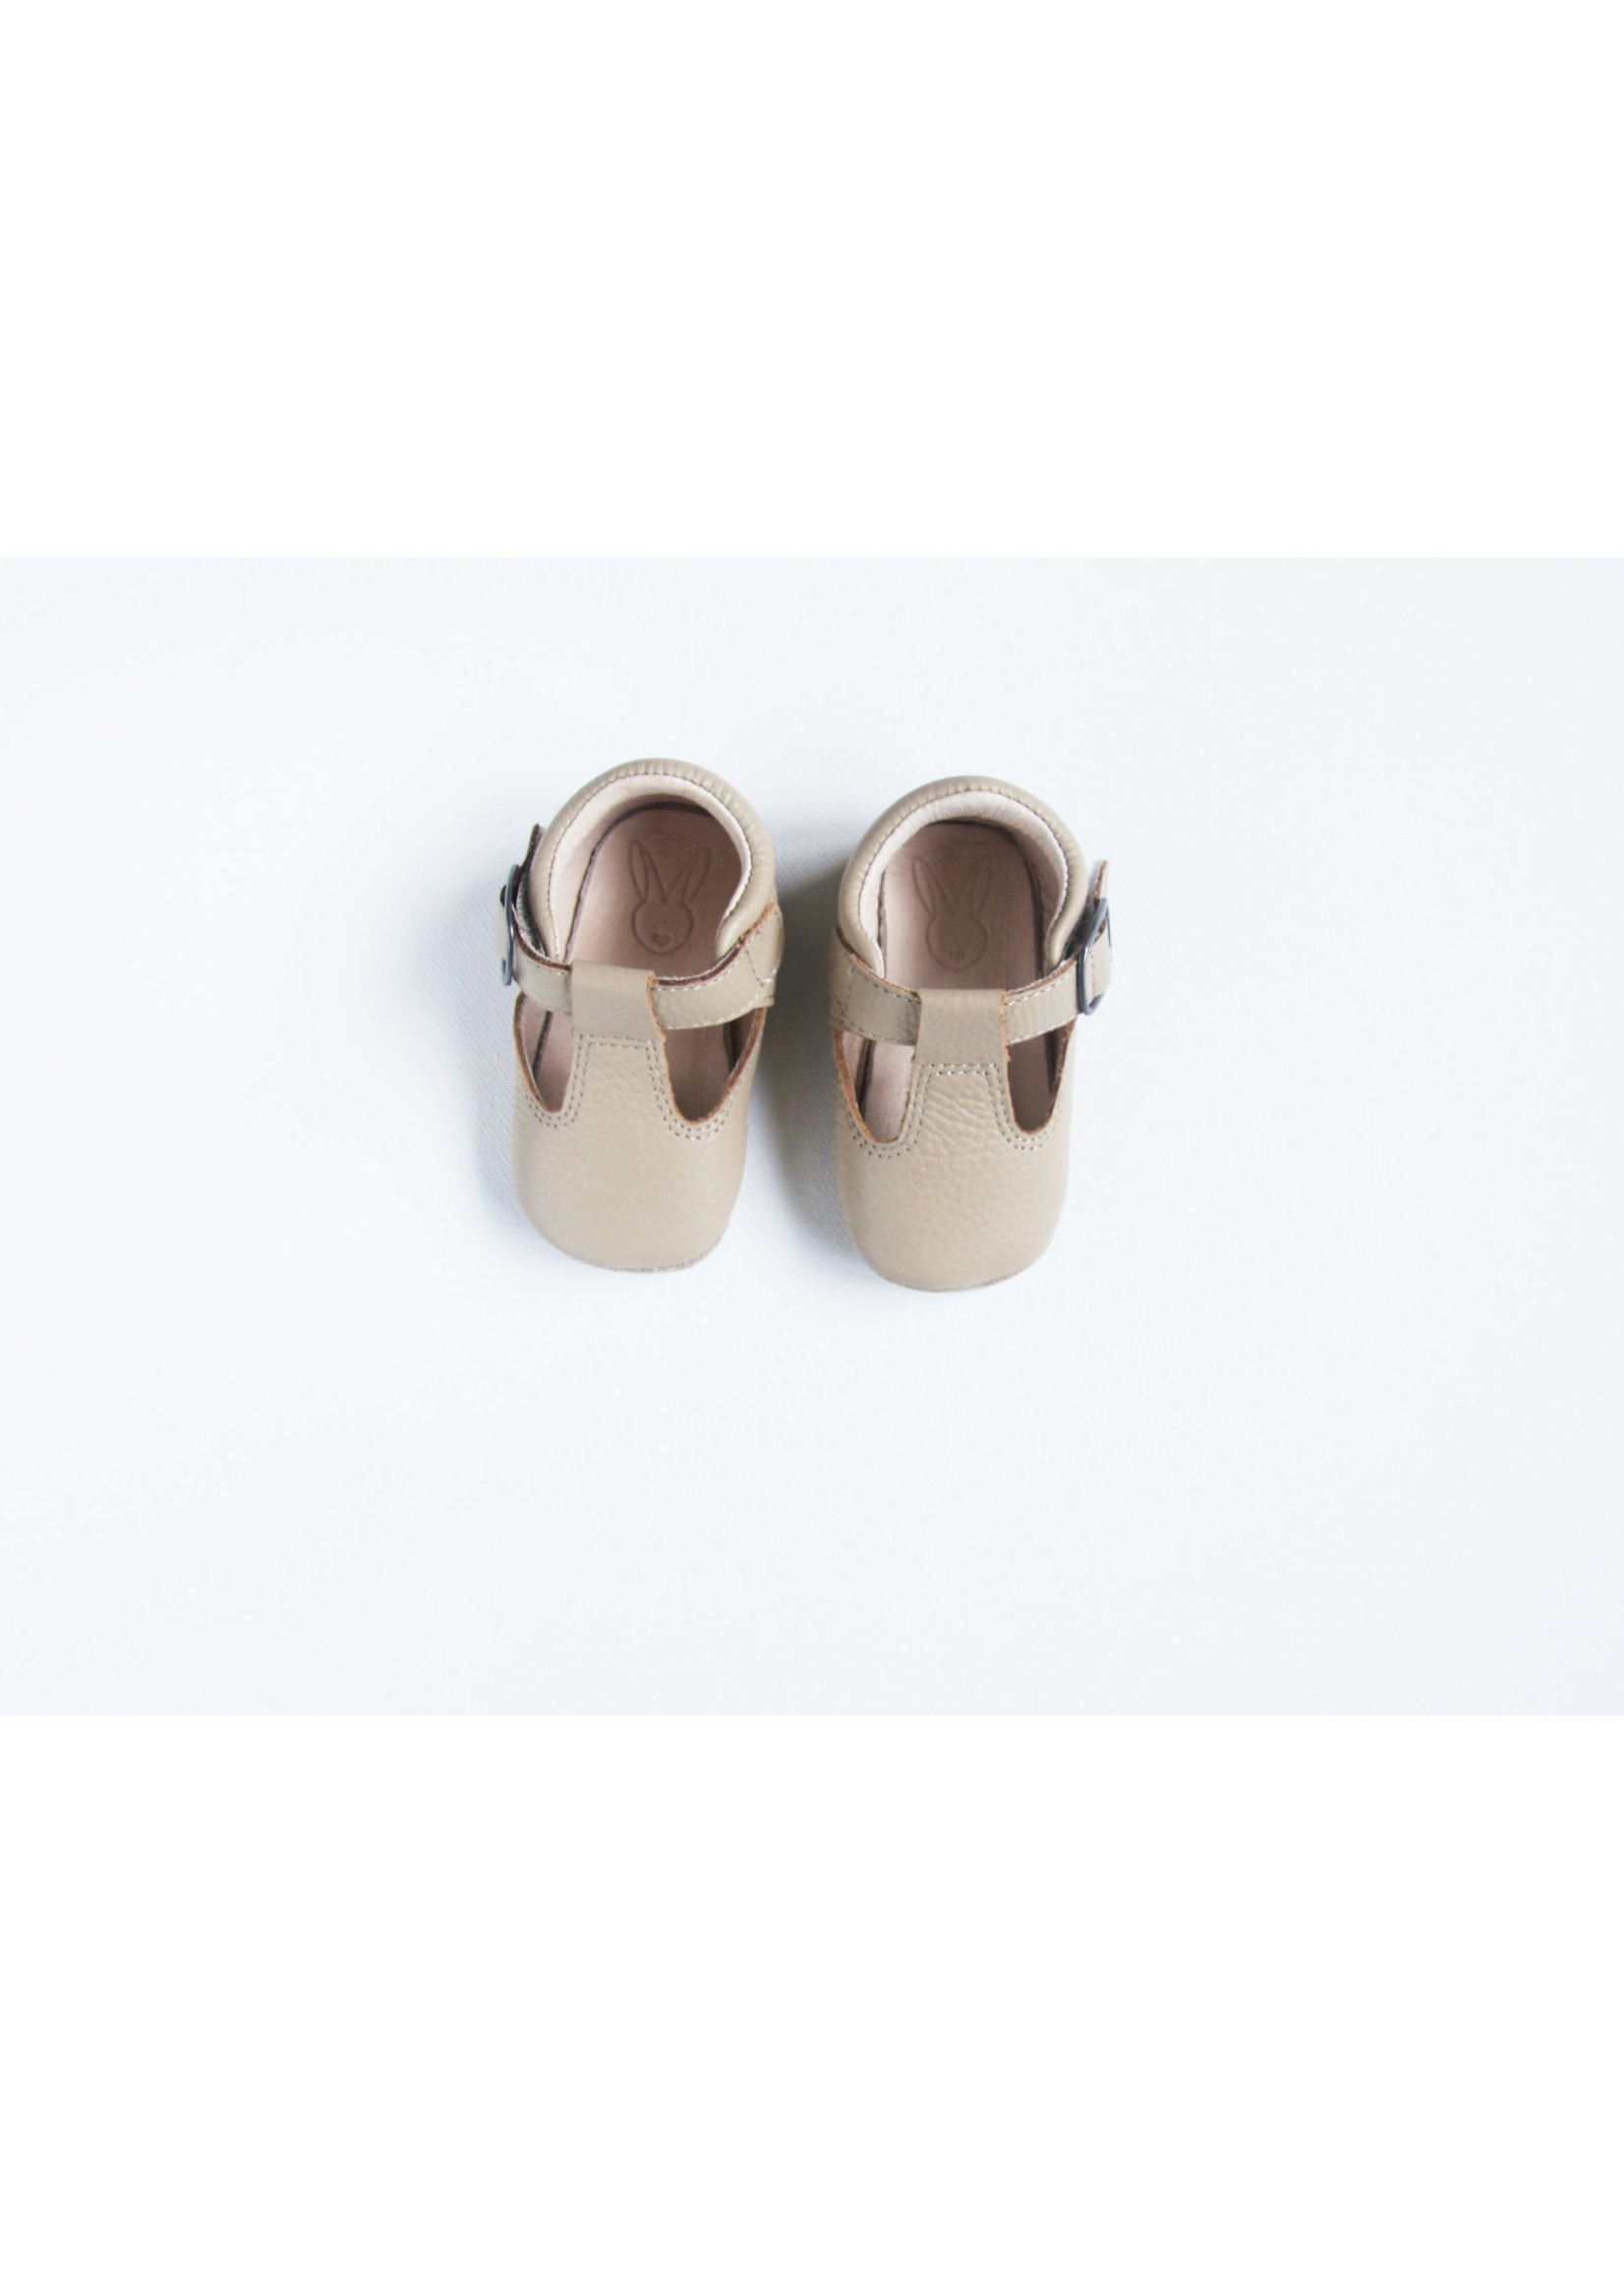 Aston Baby AB Shaughnessy Shoe (Sand)